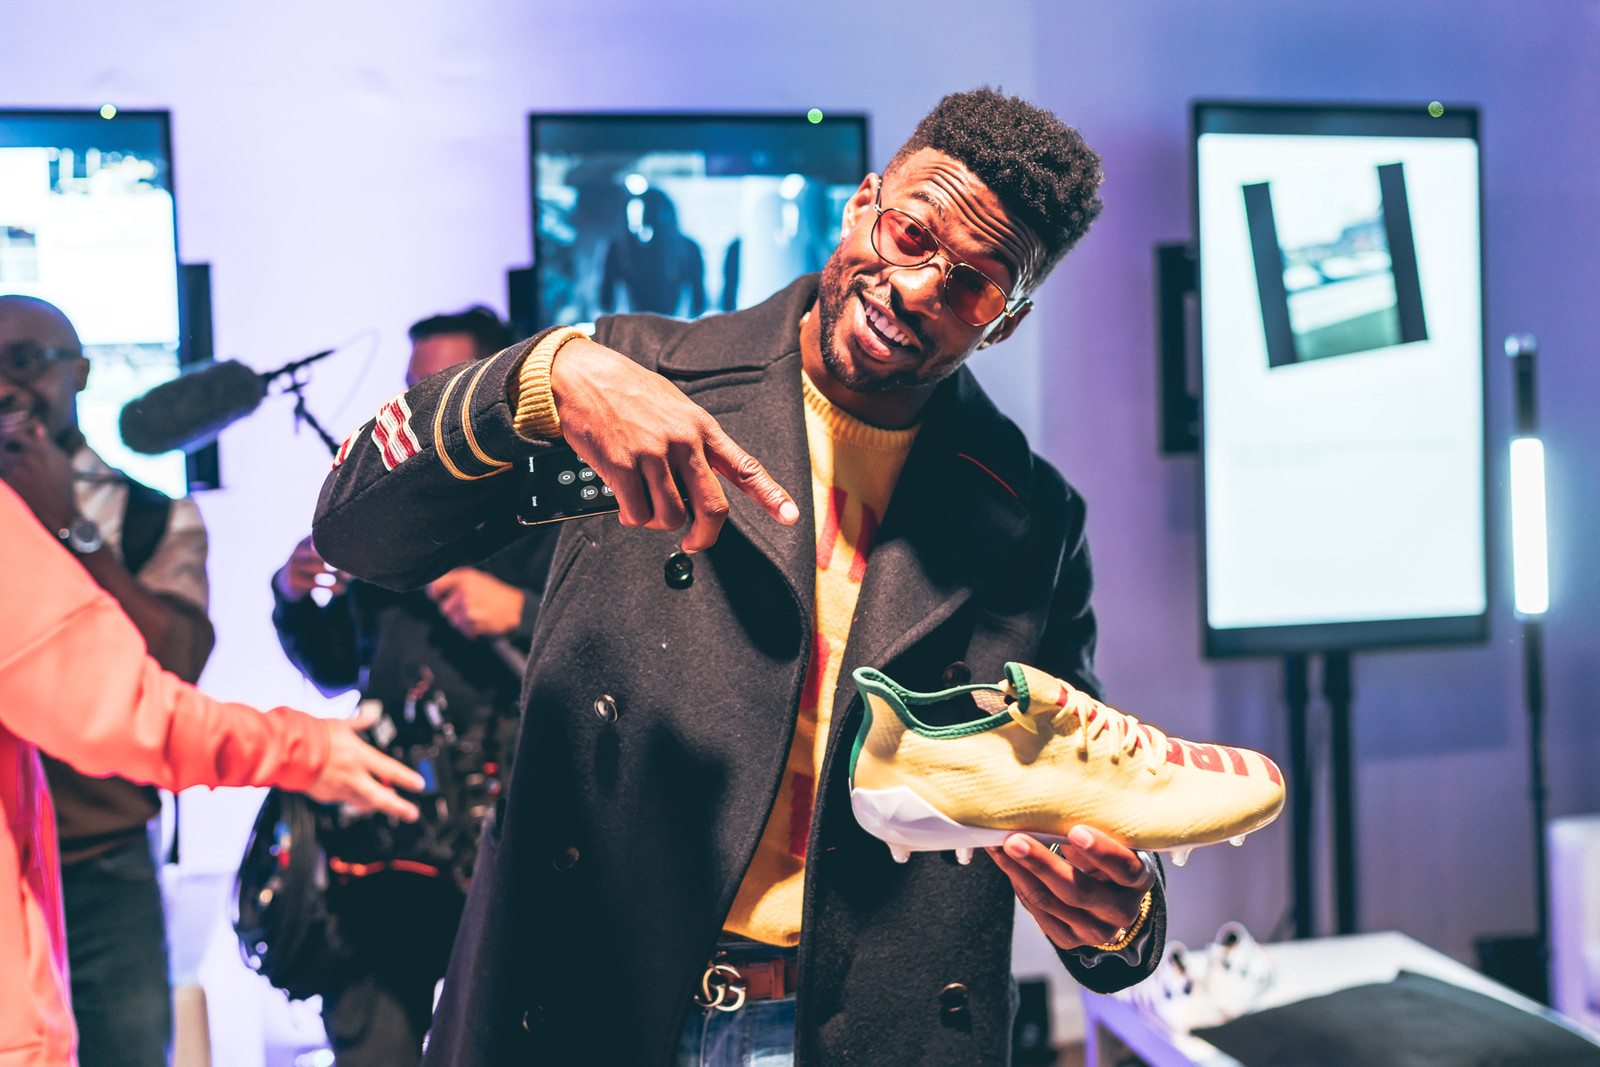 adidas SPEEDFACTORY AM4MN adidas Made for Minneapolis Football Cleat interview Super Bowl LII pharrell williams snoop dogg